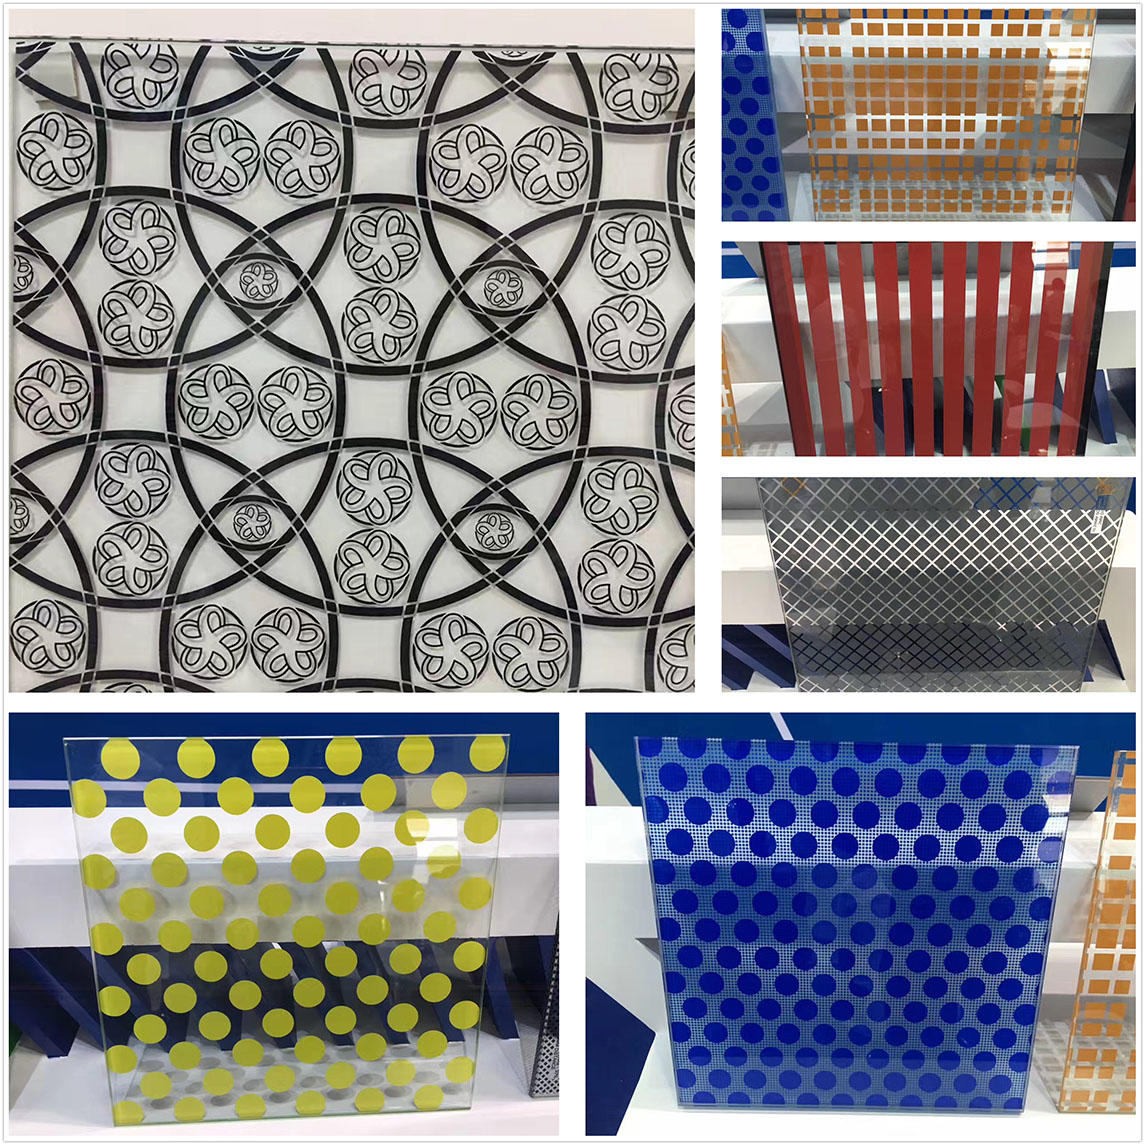 JinYi tempered tempered glass panels pattern for bathroom door-2